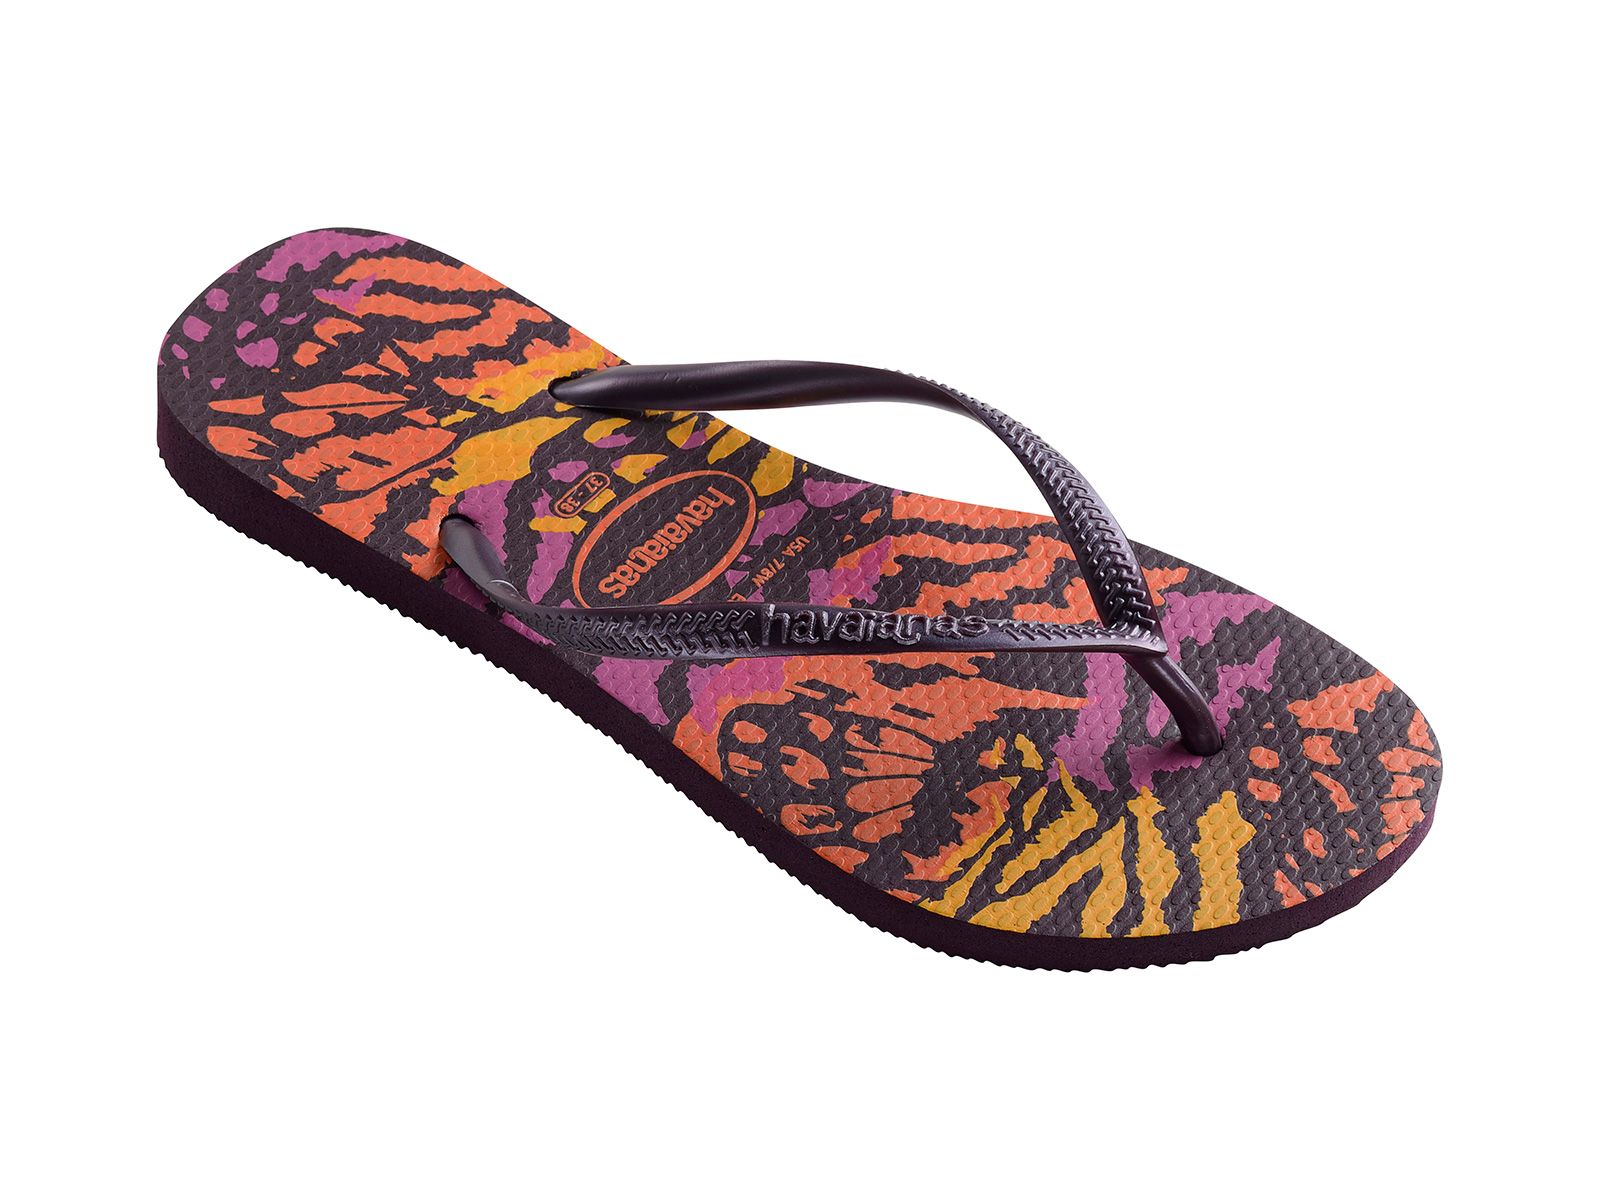 53848e43a70 Flip-Flops Colorful Animal Print Flip Flops - Slim Animals Aubergine